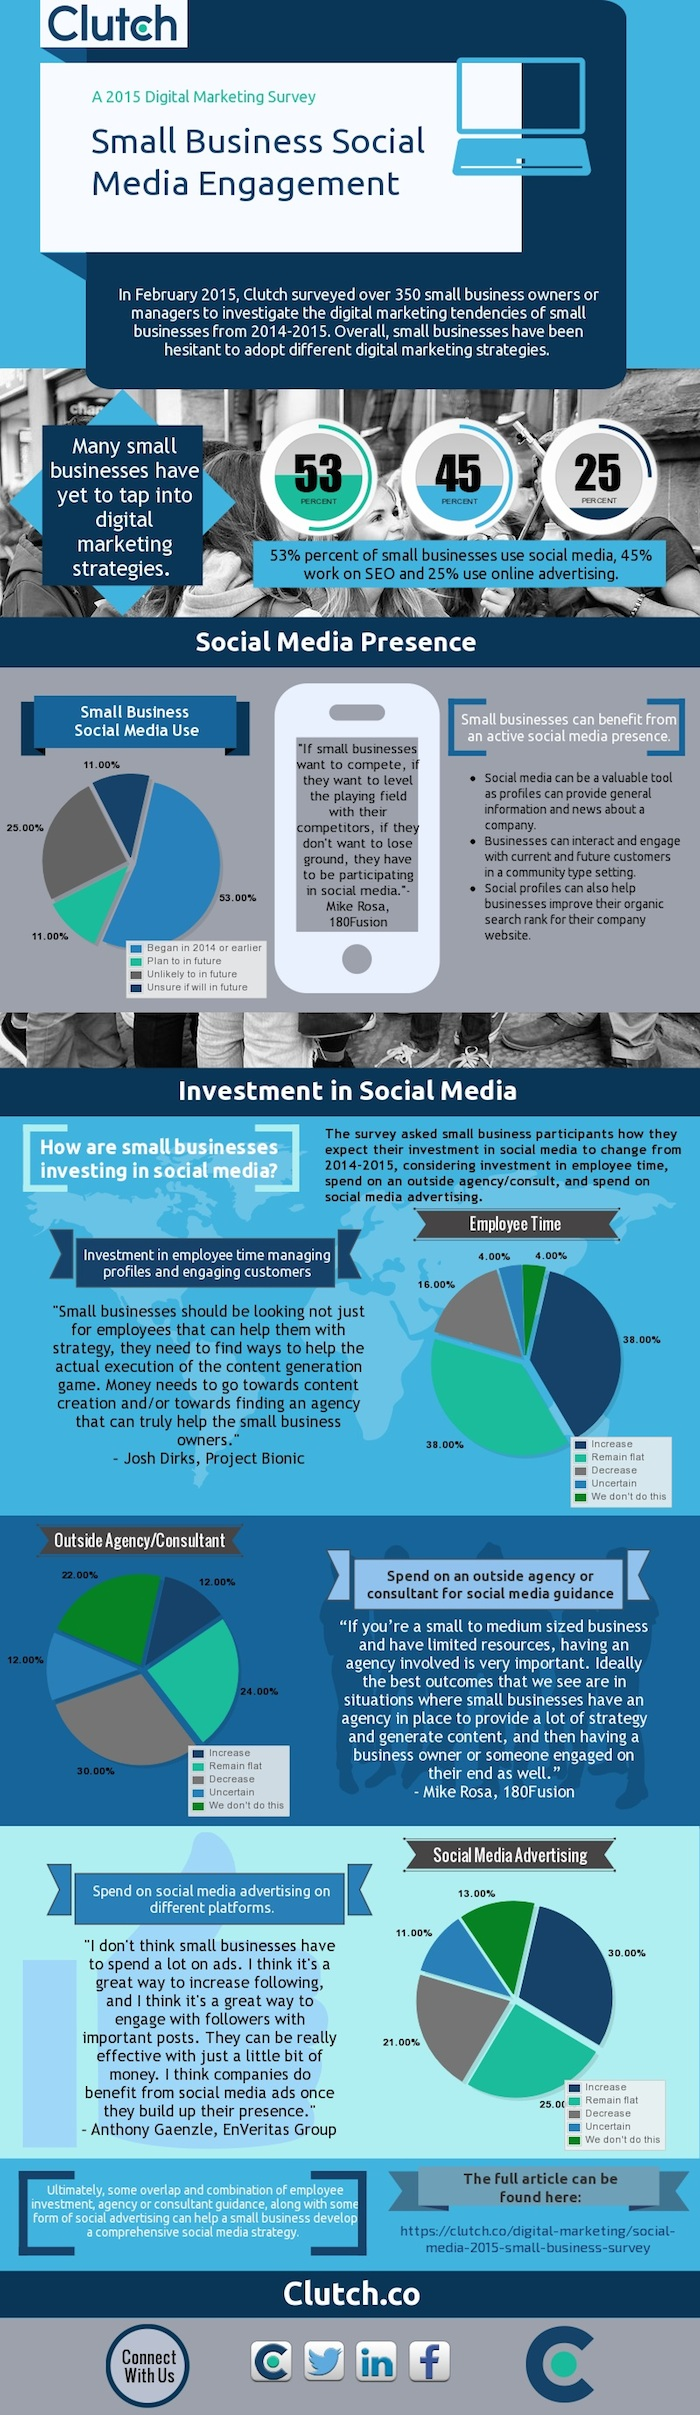 Clutch Infographic Small Business Survey Image Search Influence